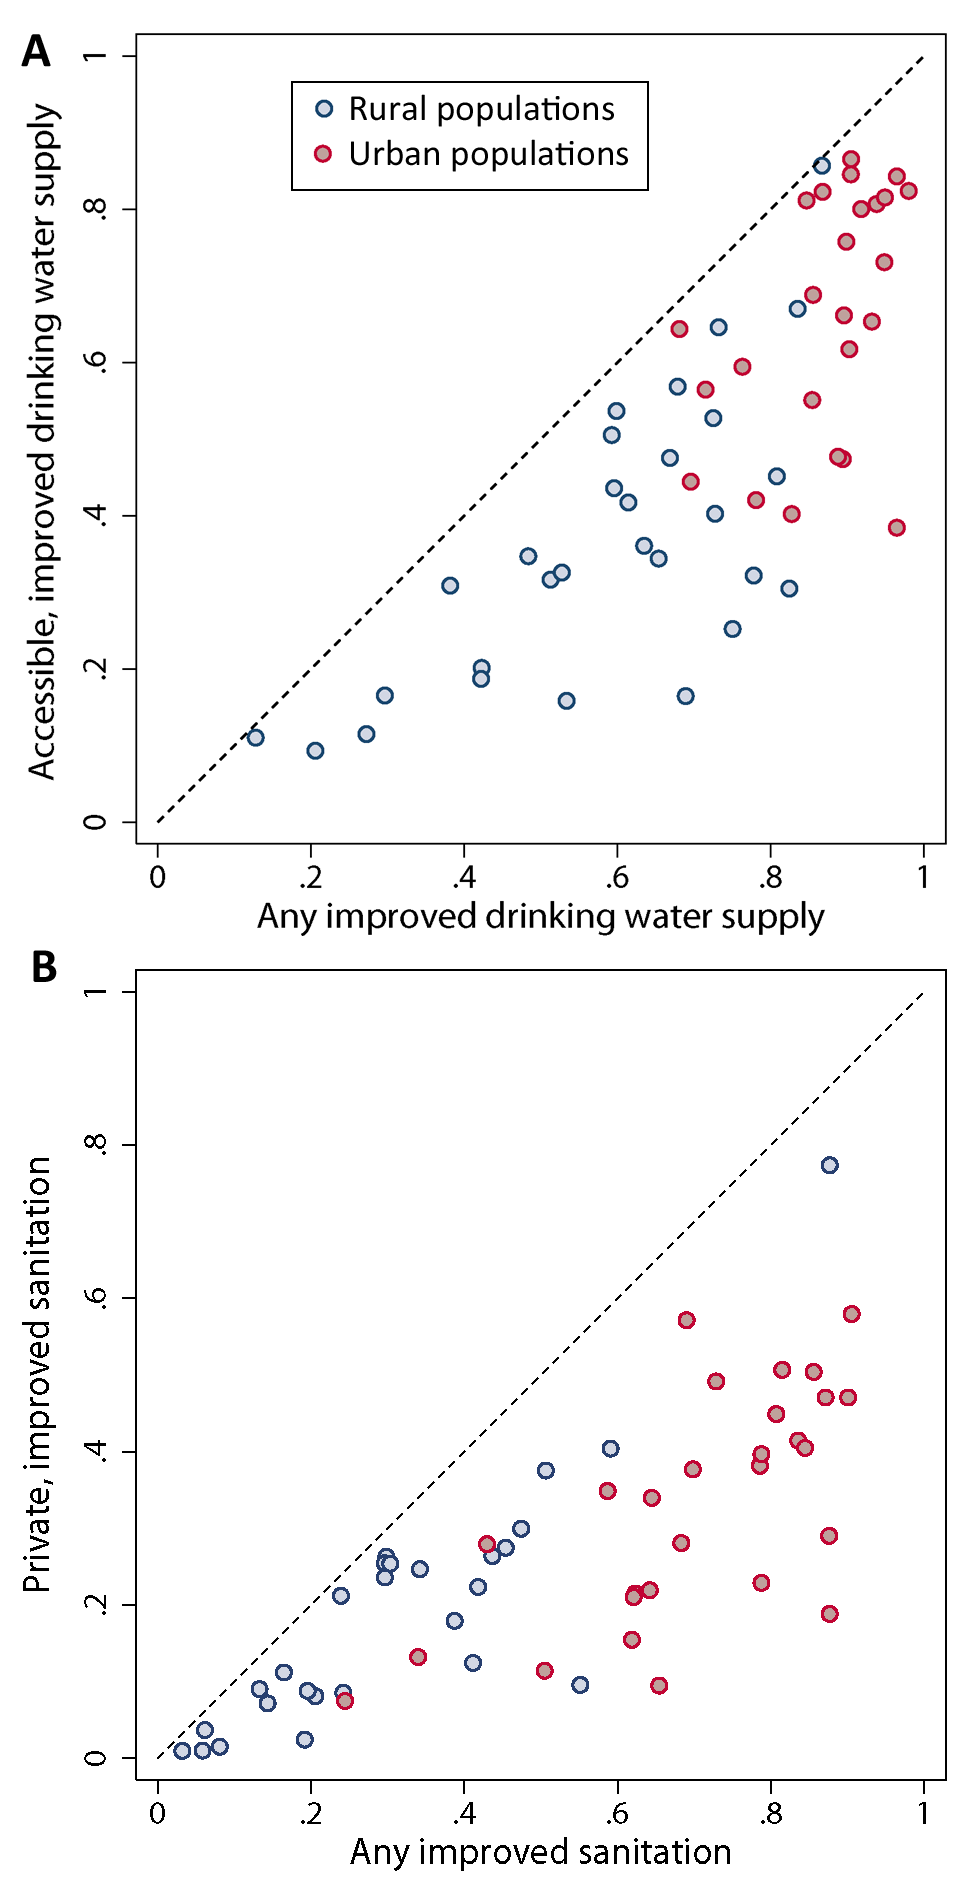 Comparison of (A) any improved drinking water source against accessible, improved drinking water source and (B) any improved sanitation against private improved sanitation.